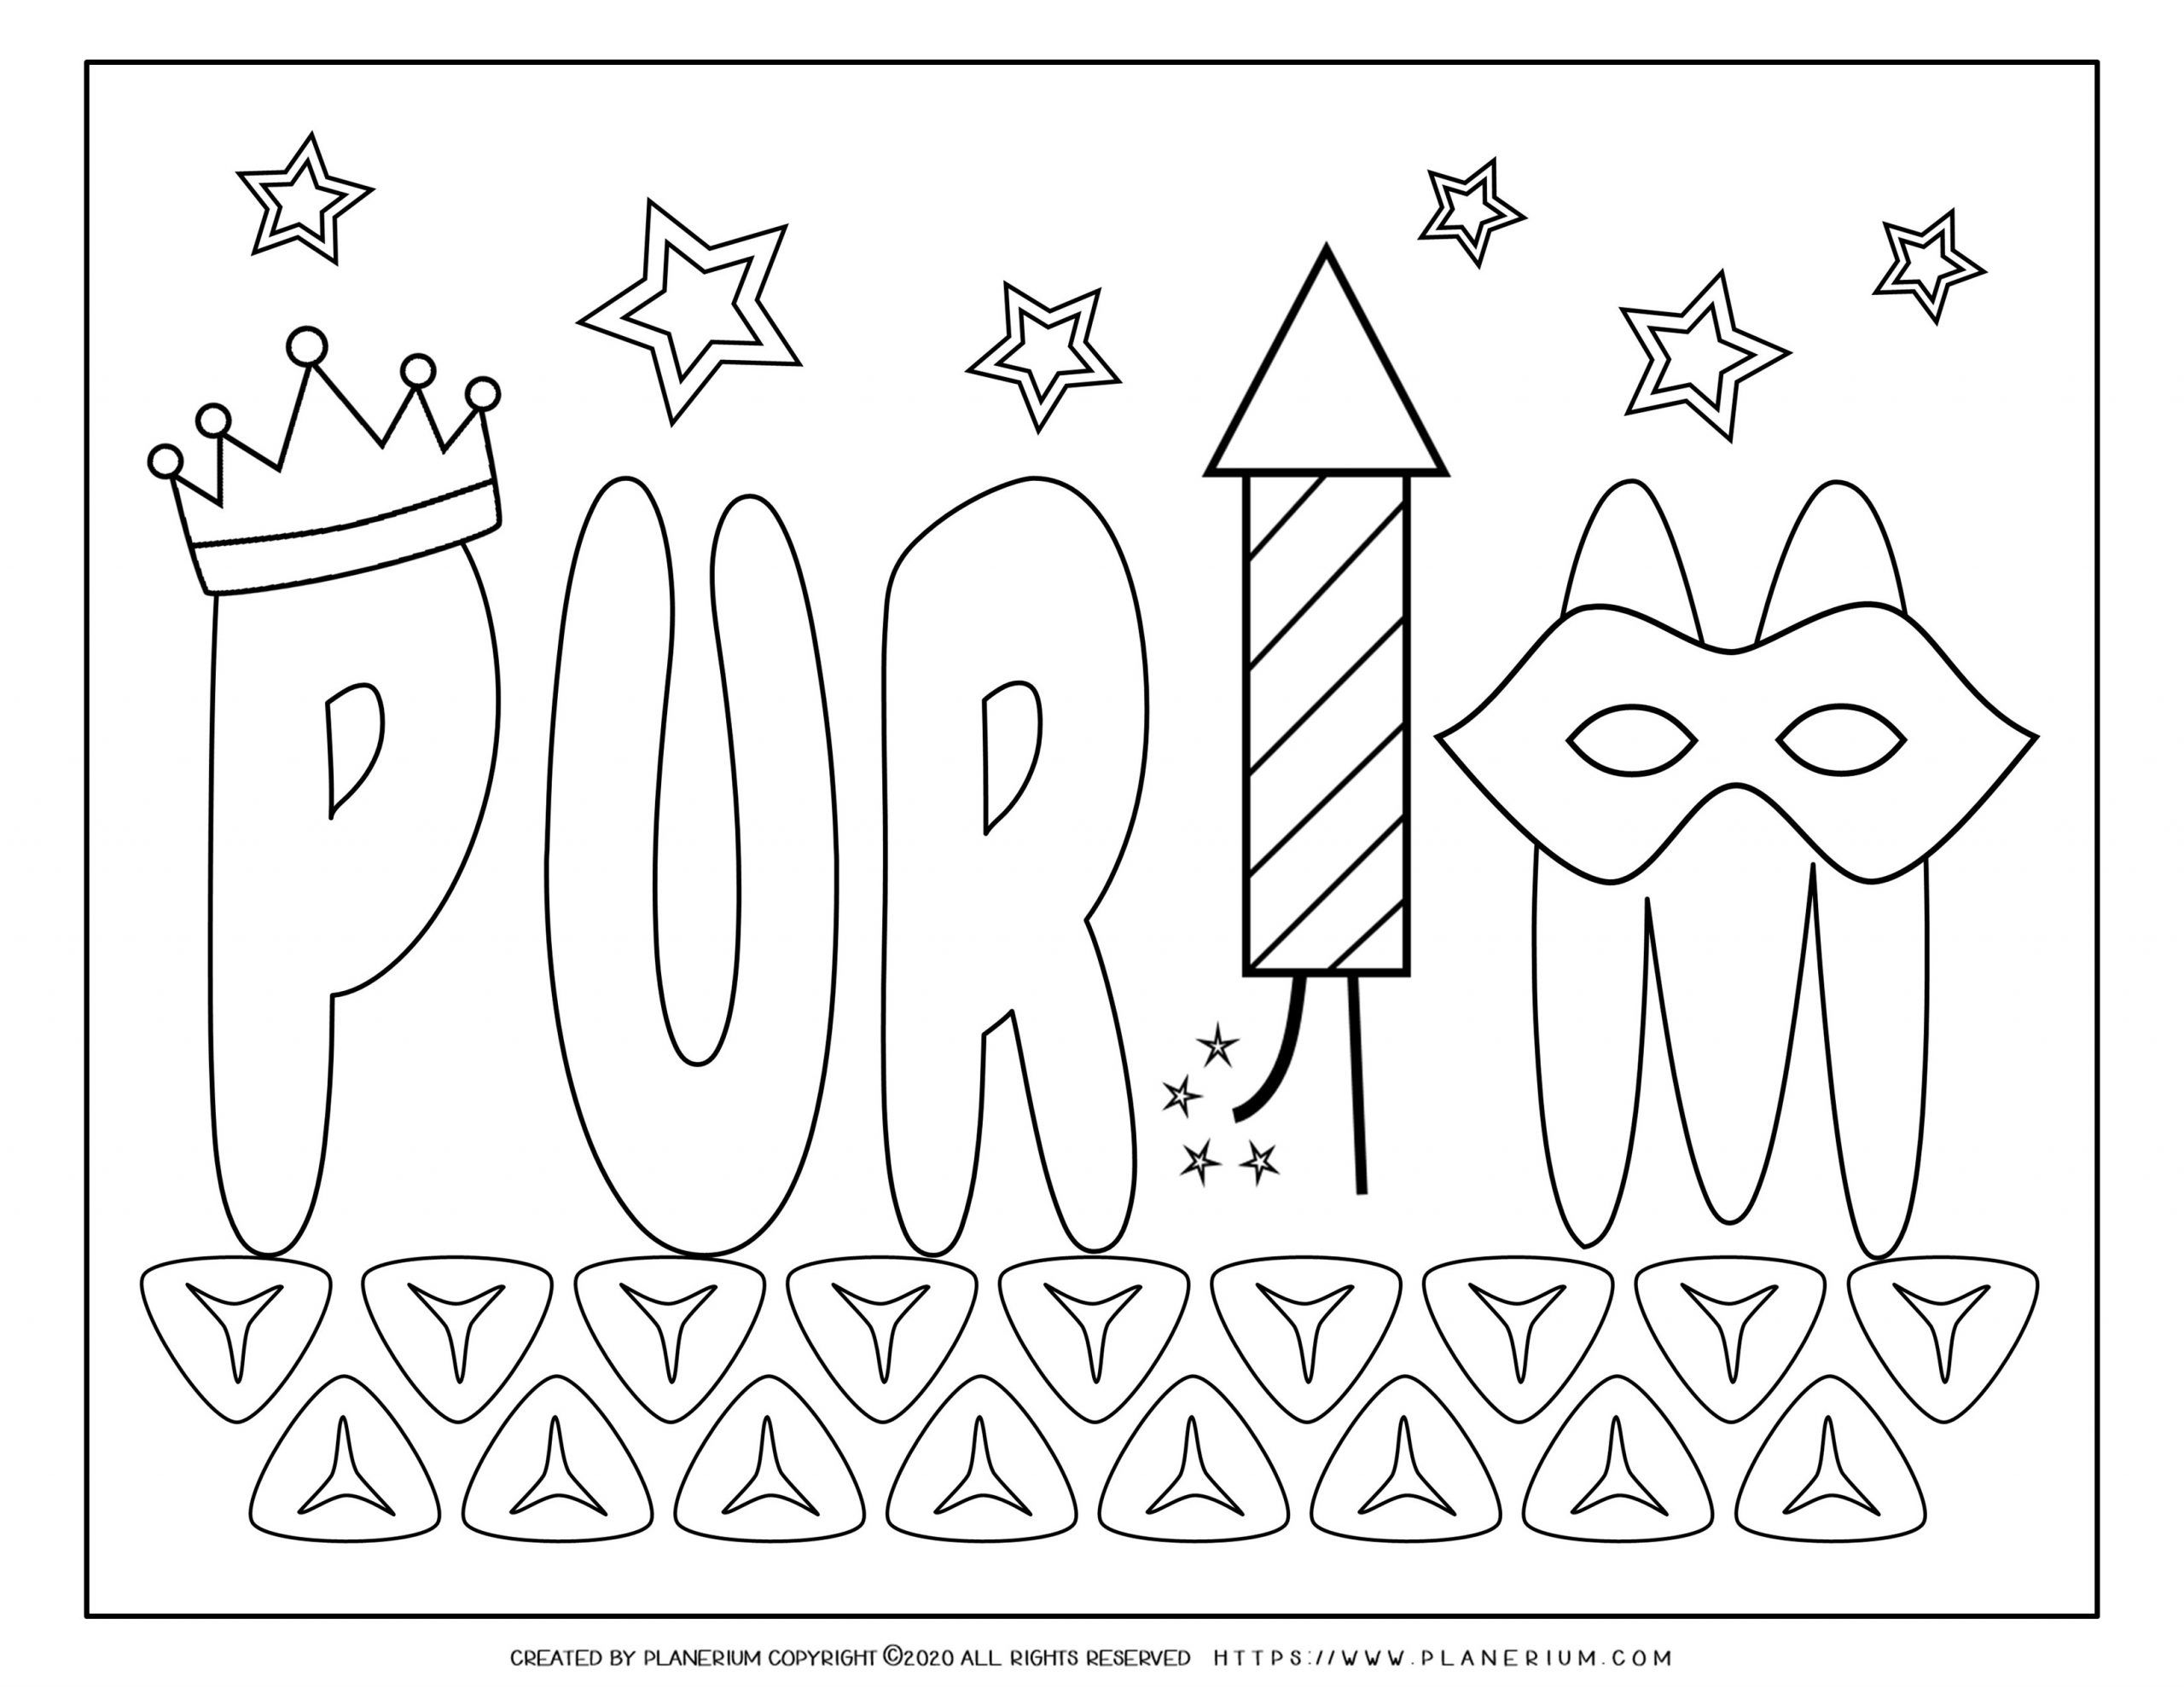 Purim 2020 - Coloring - Purim title on Hamantaschen